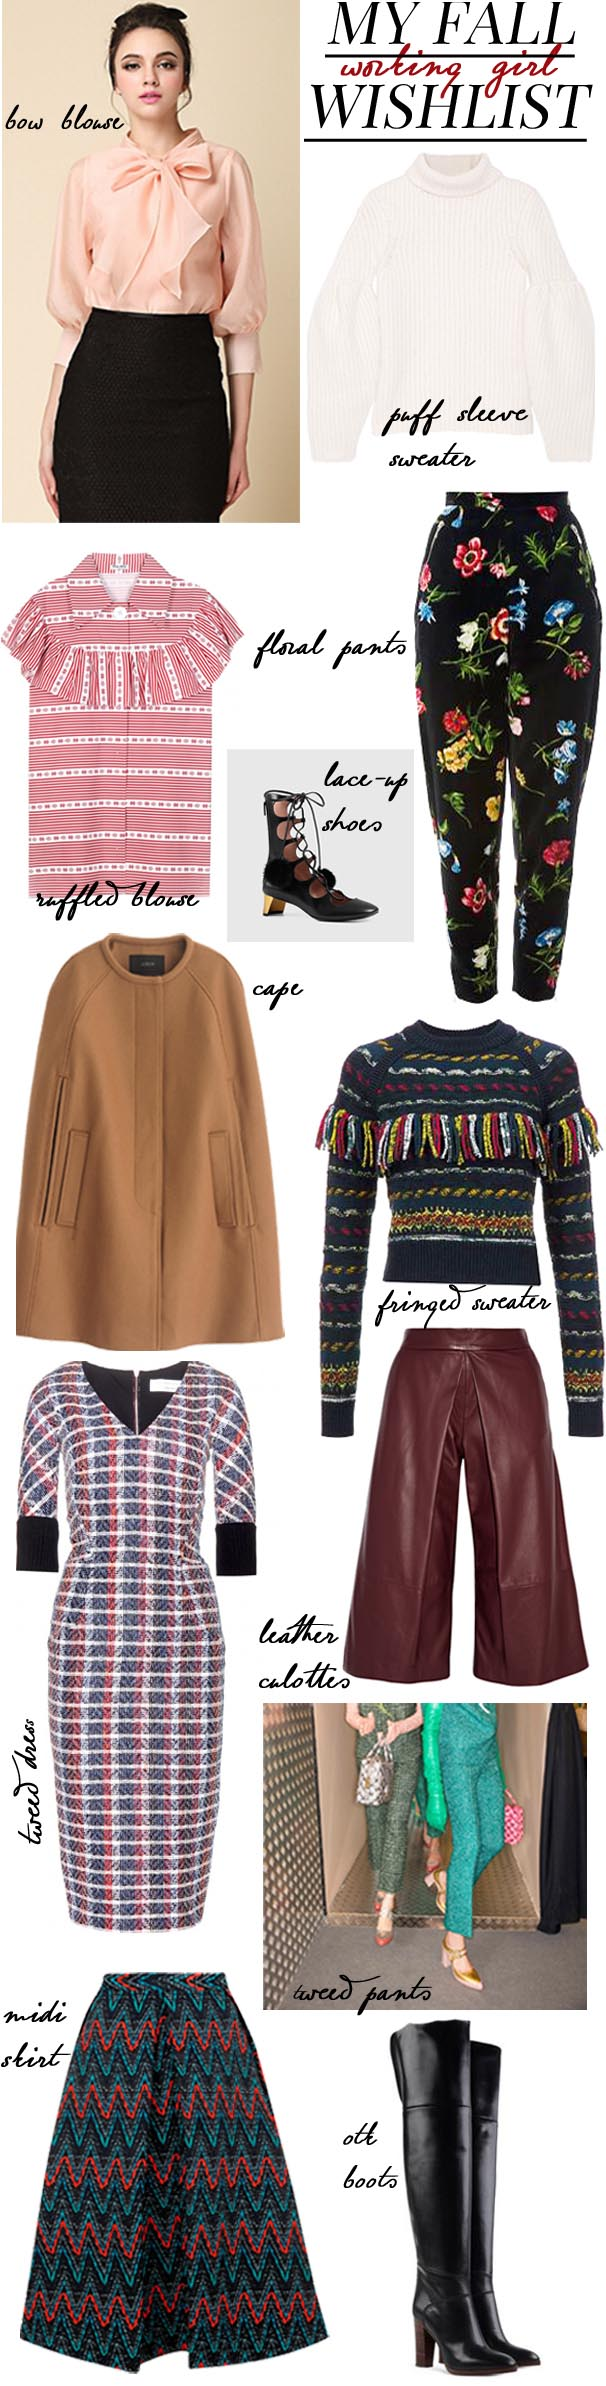 My Fall Wishlist